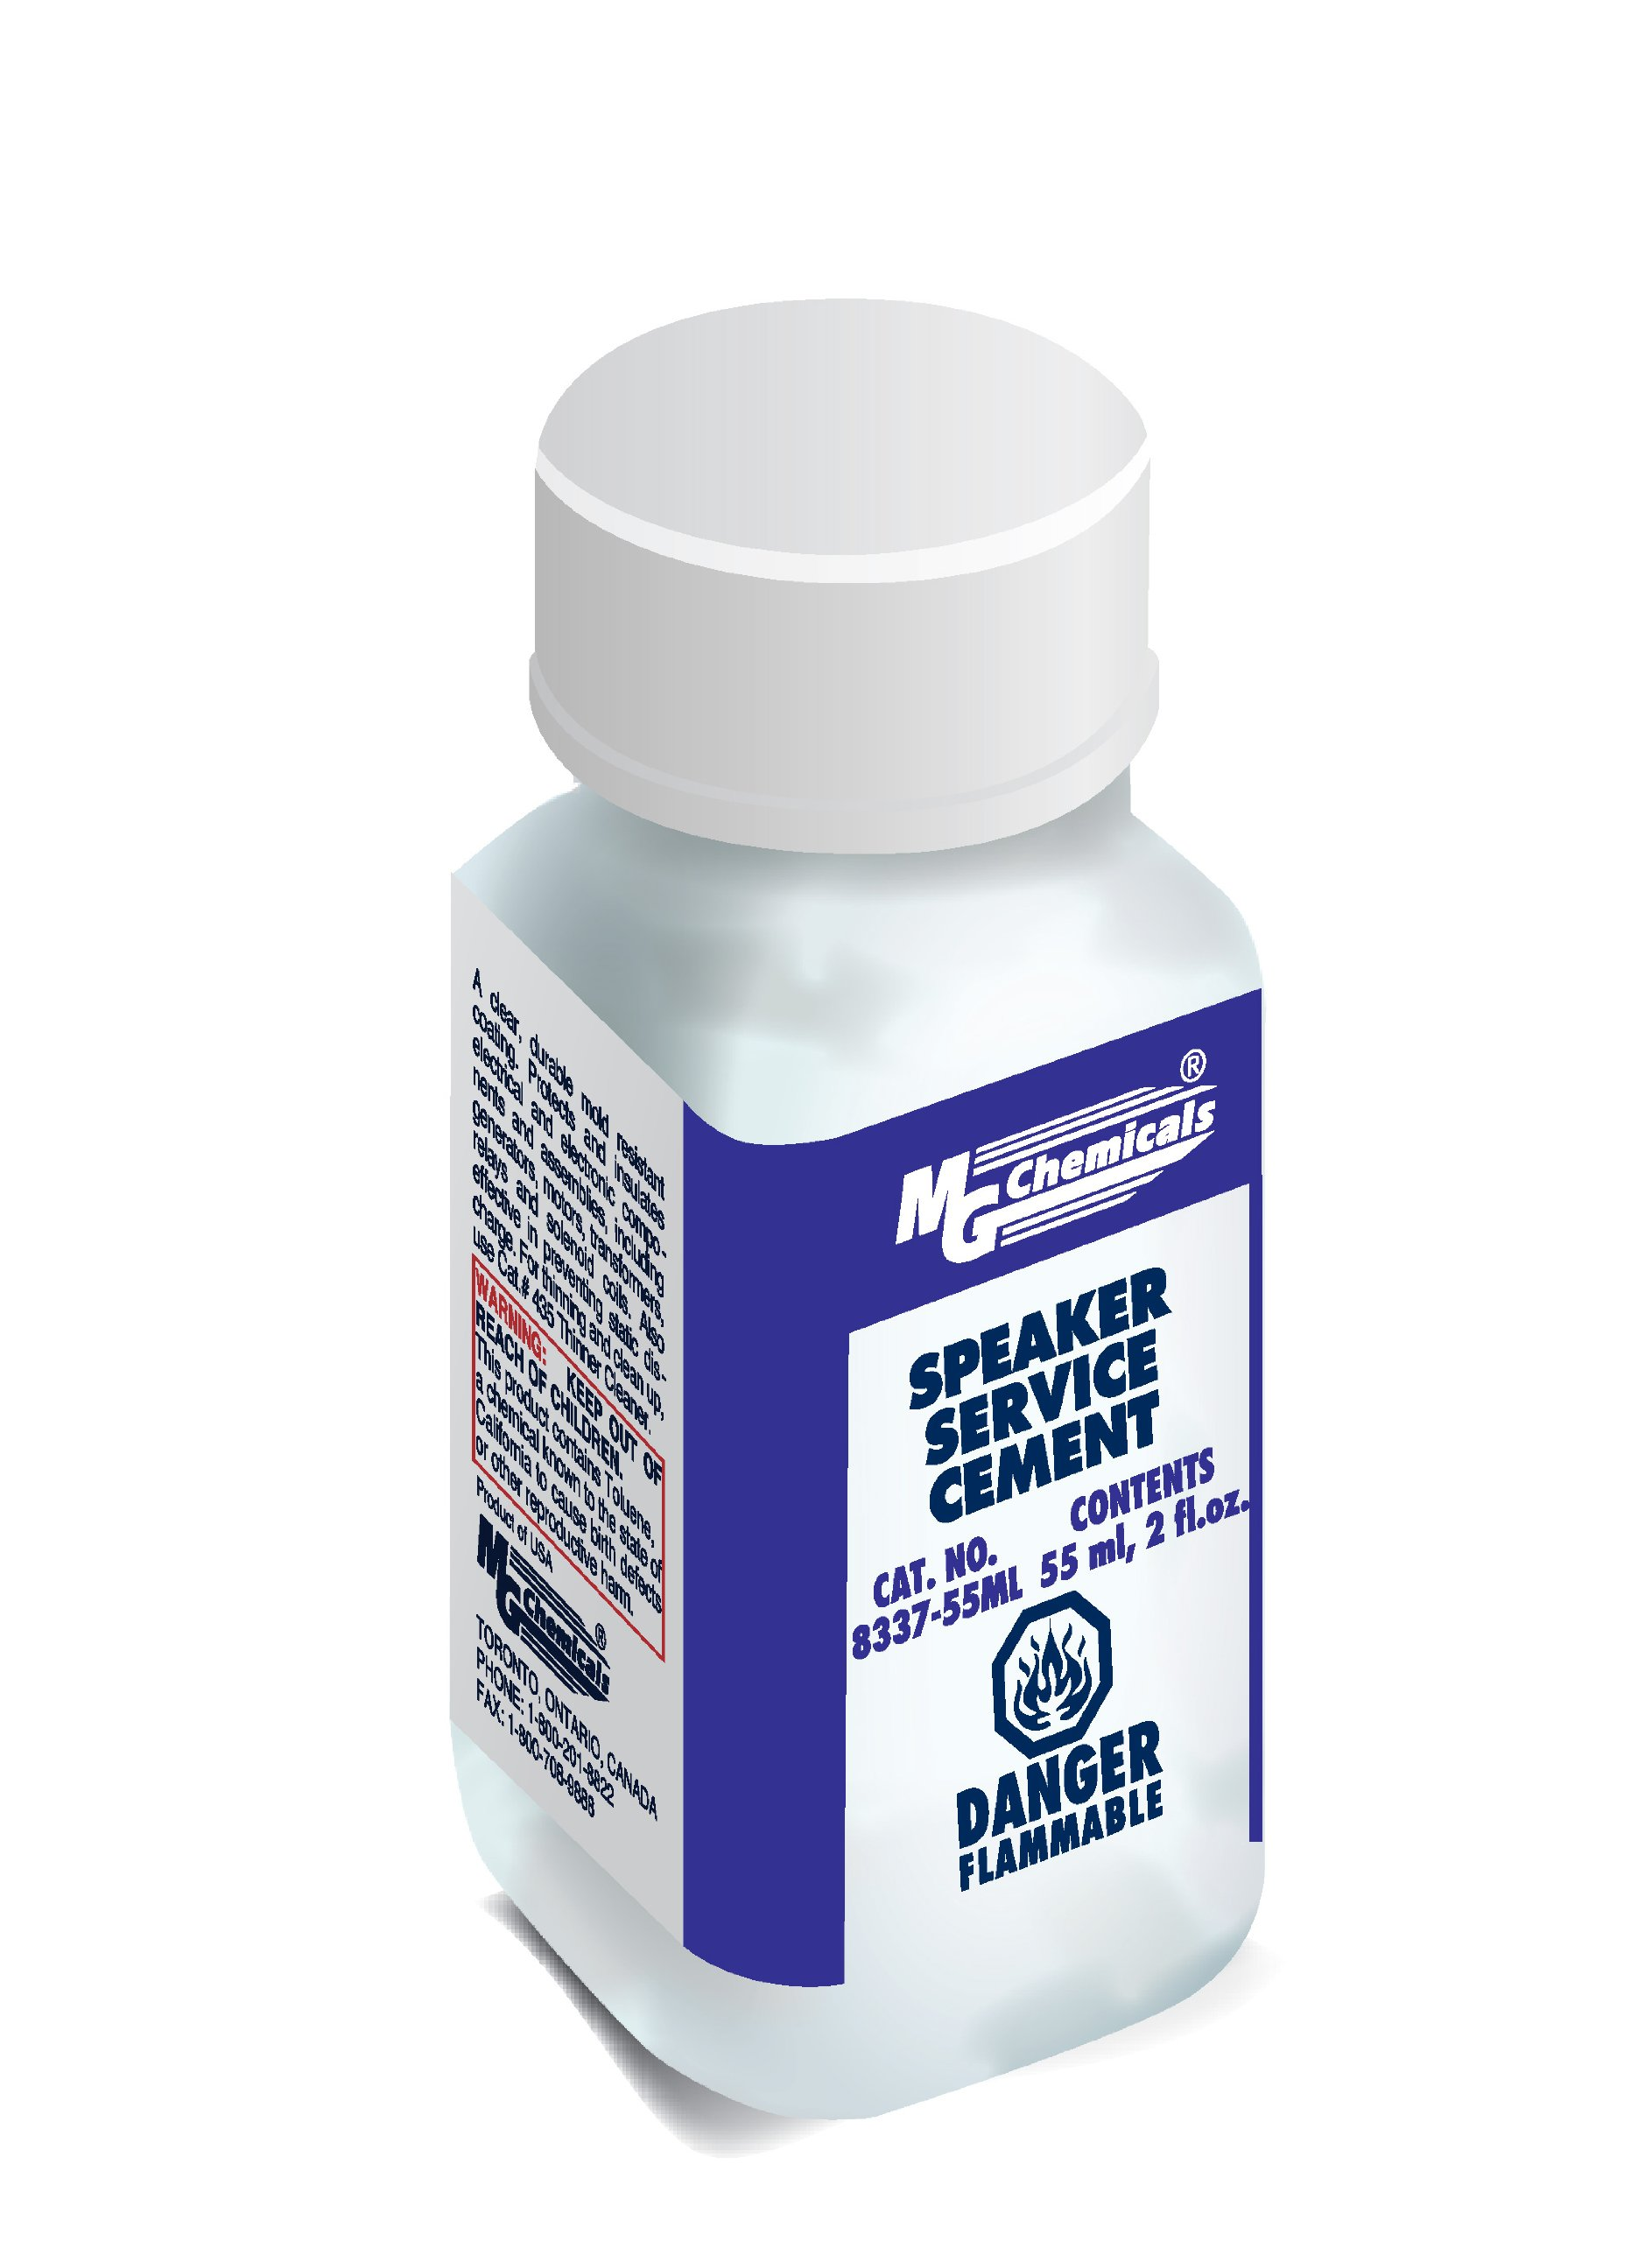 Mg Chemicals Speaker Service Contact Cement 55 Ml Liquid